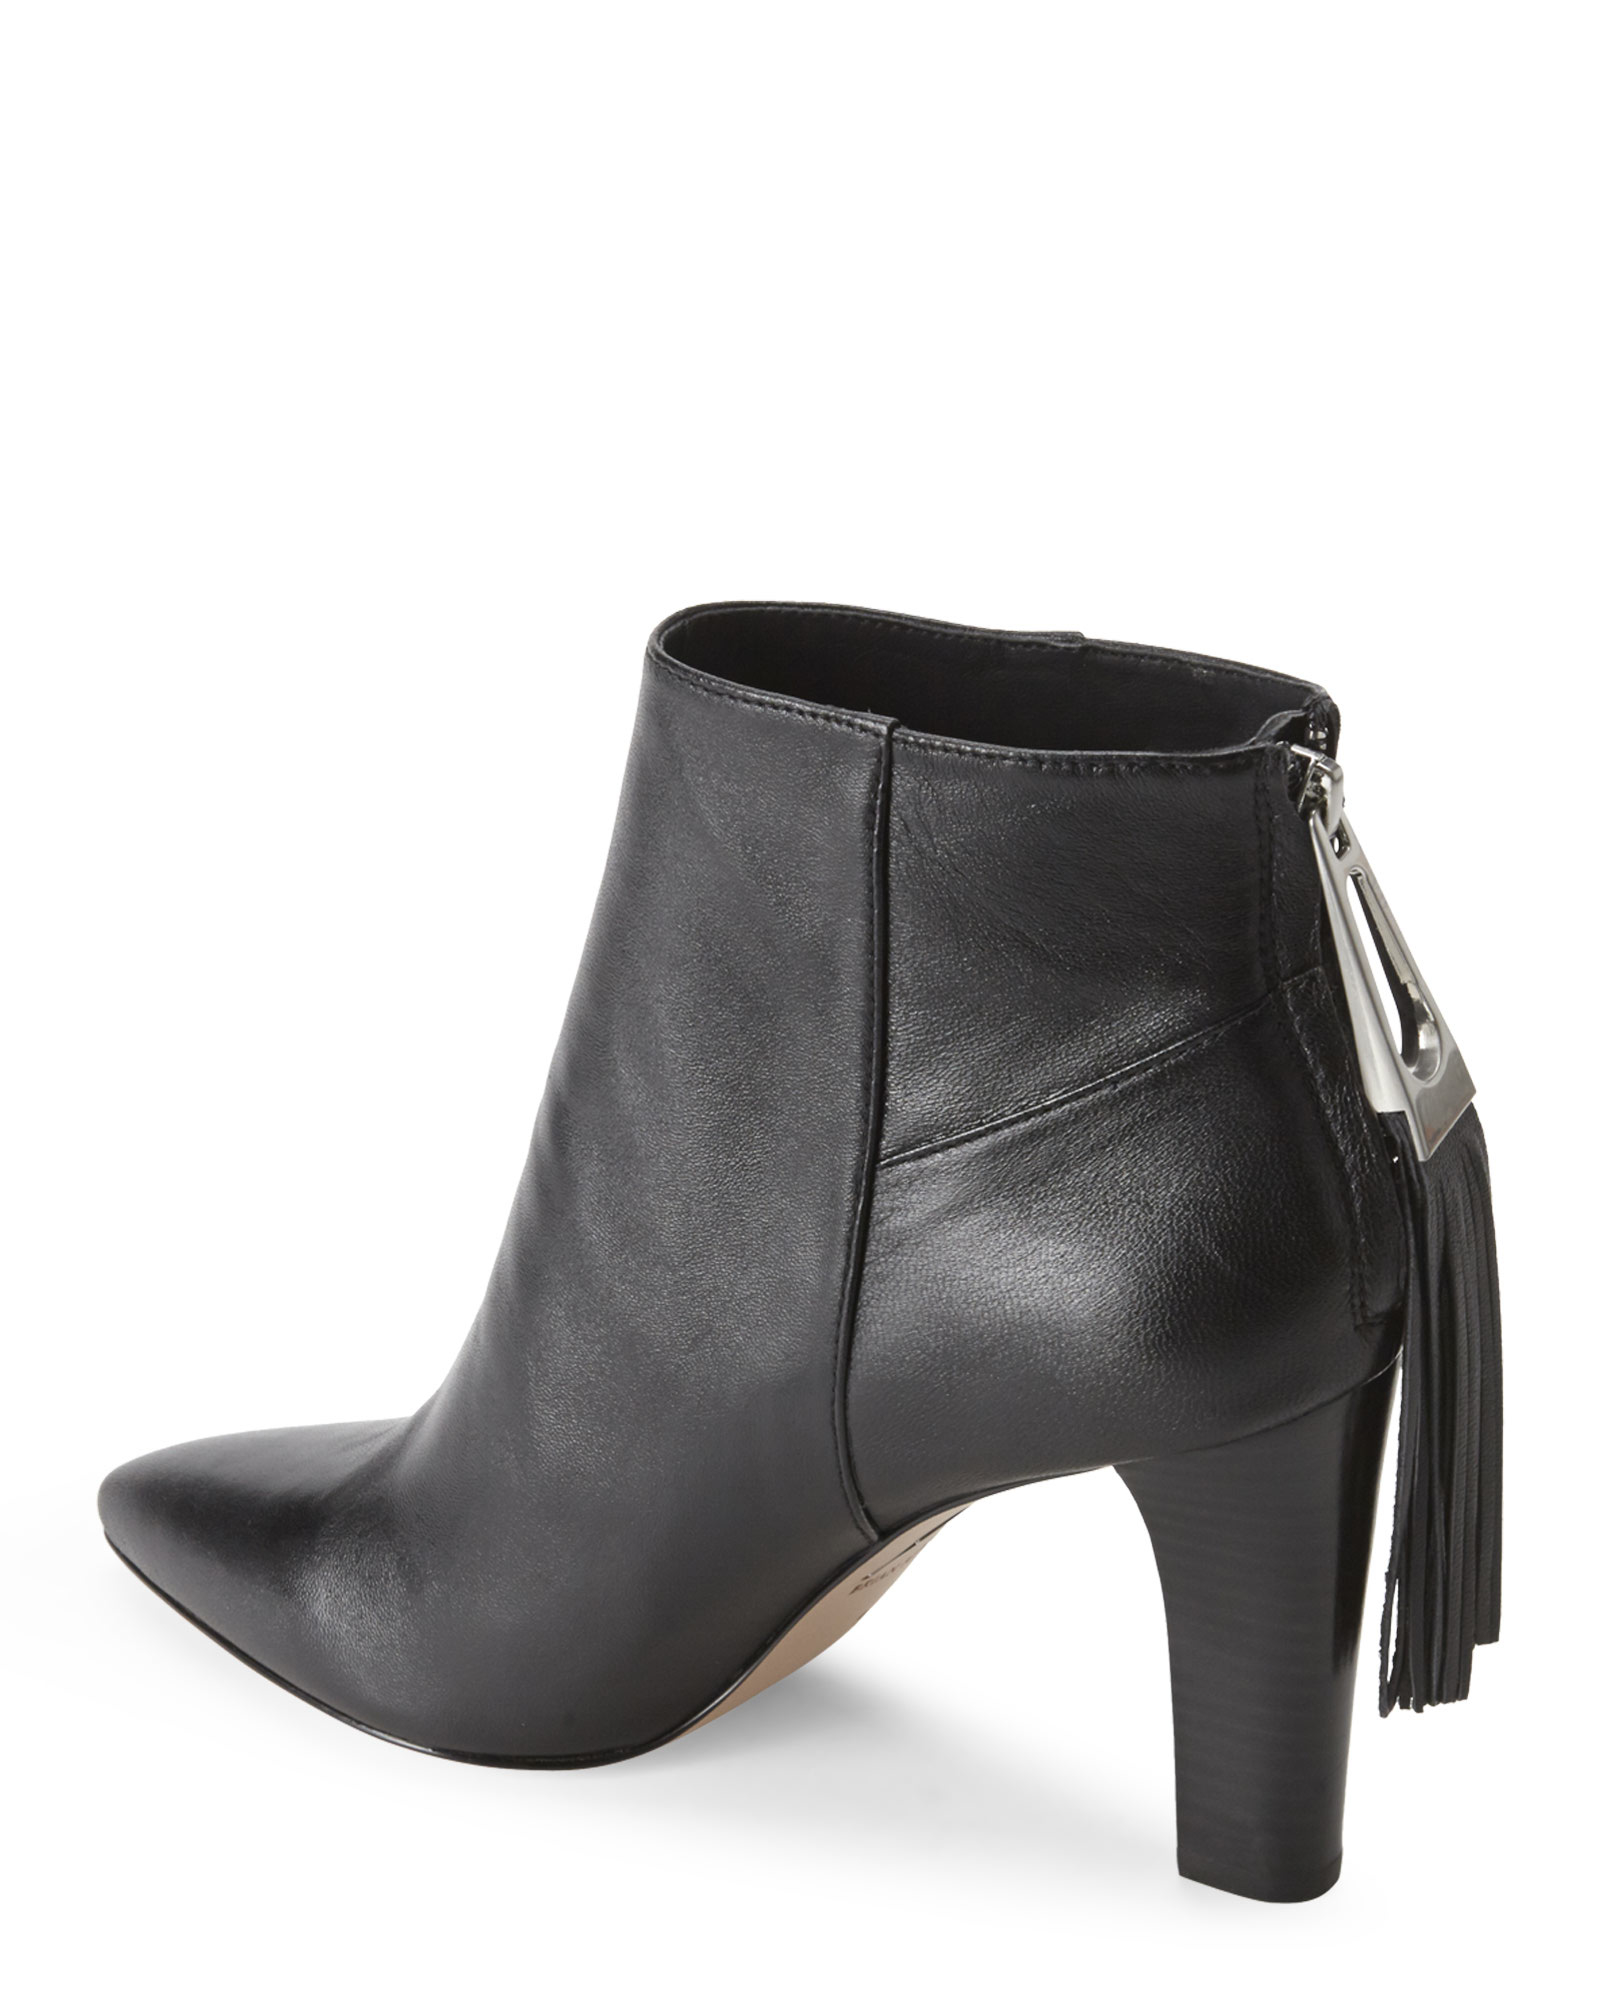 BRIAN ATWOOD Leather Ankle Boots MLMKfTH2O